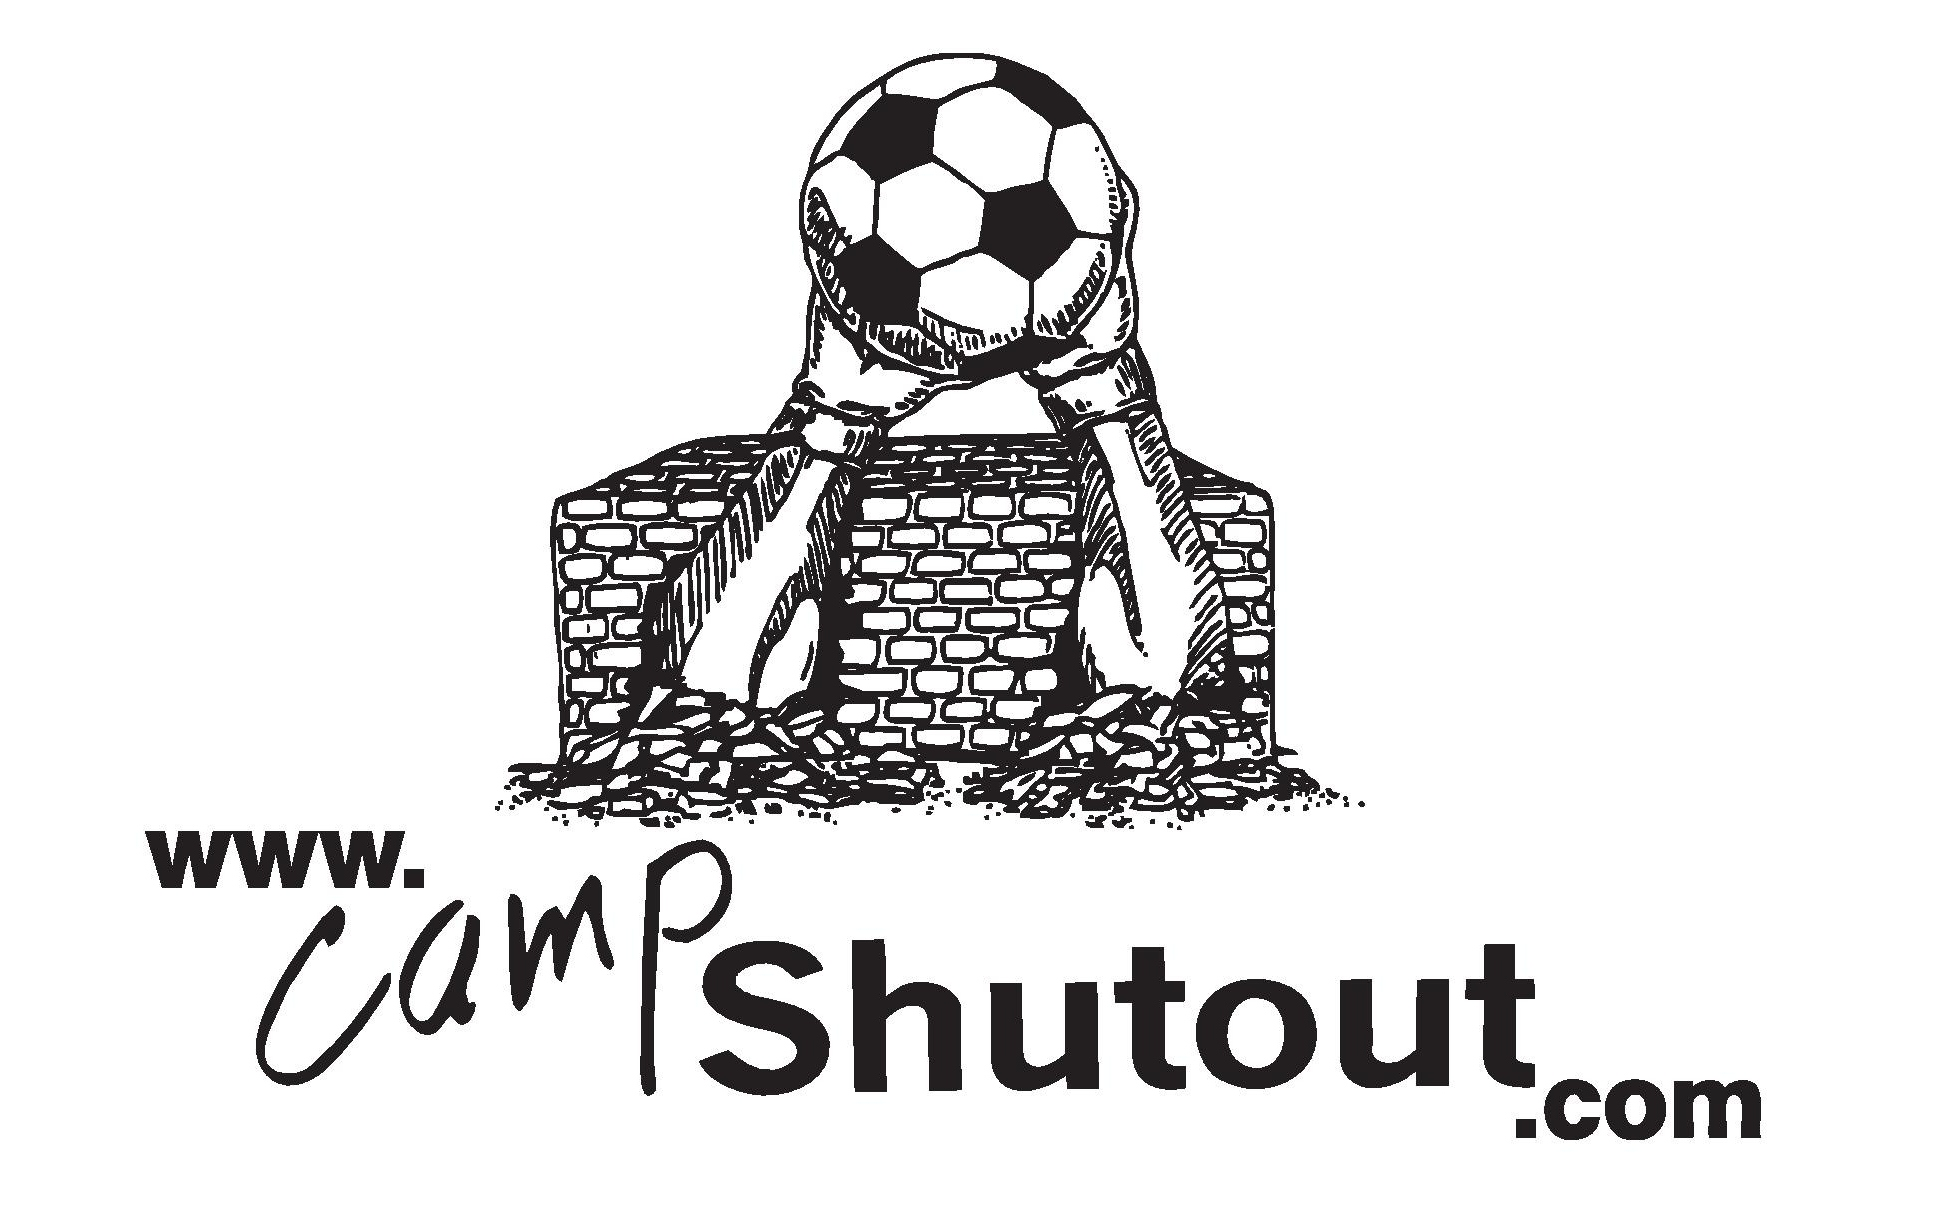 Camp Shutout official